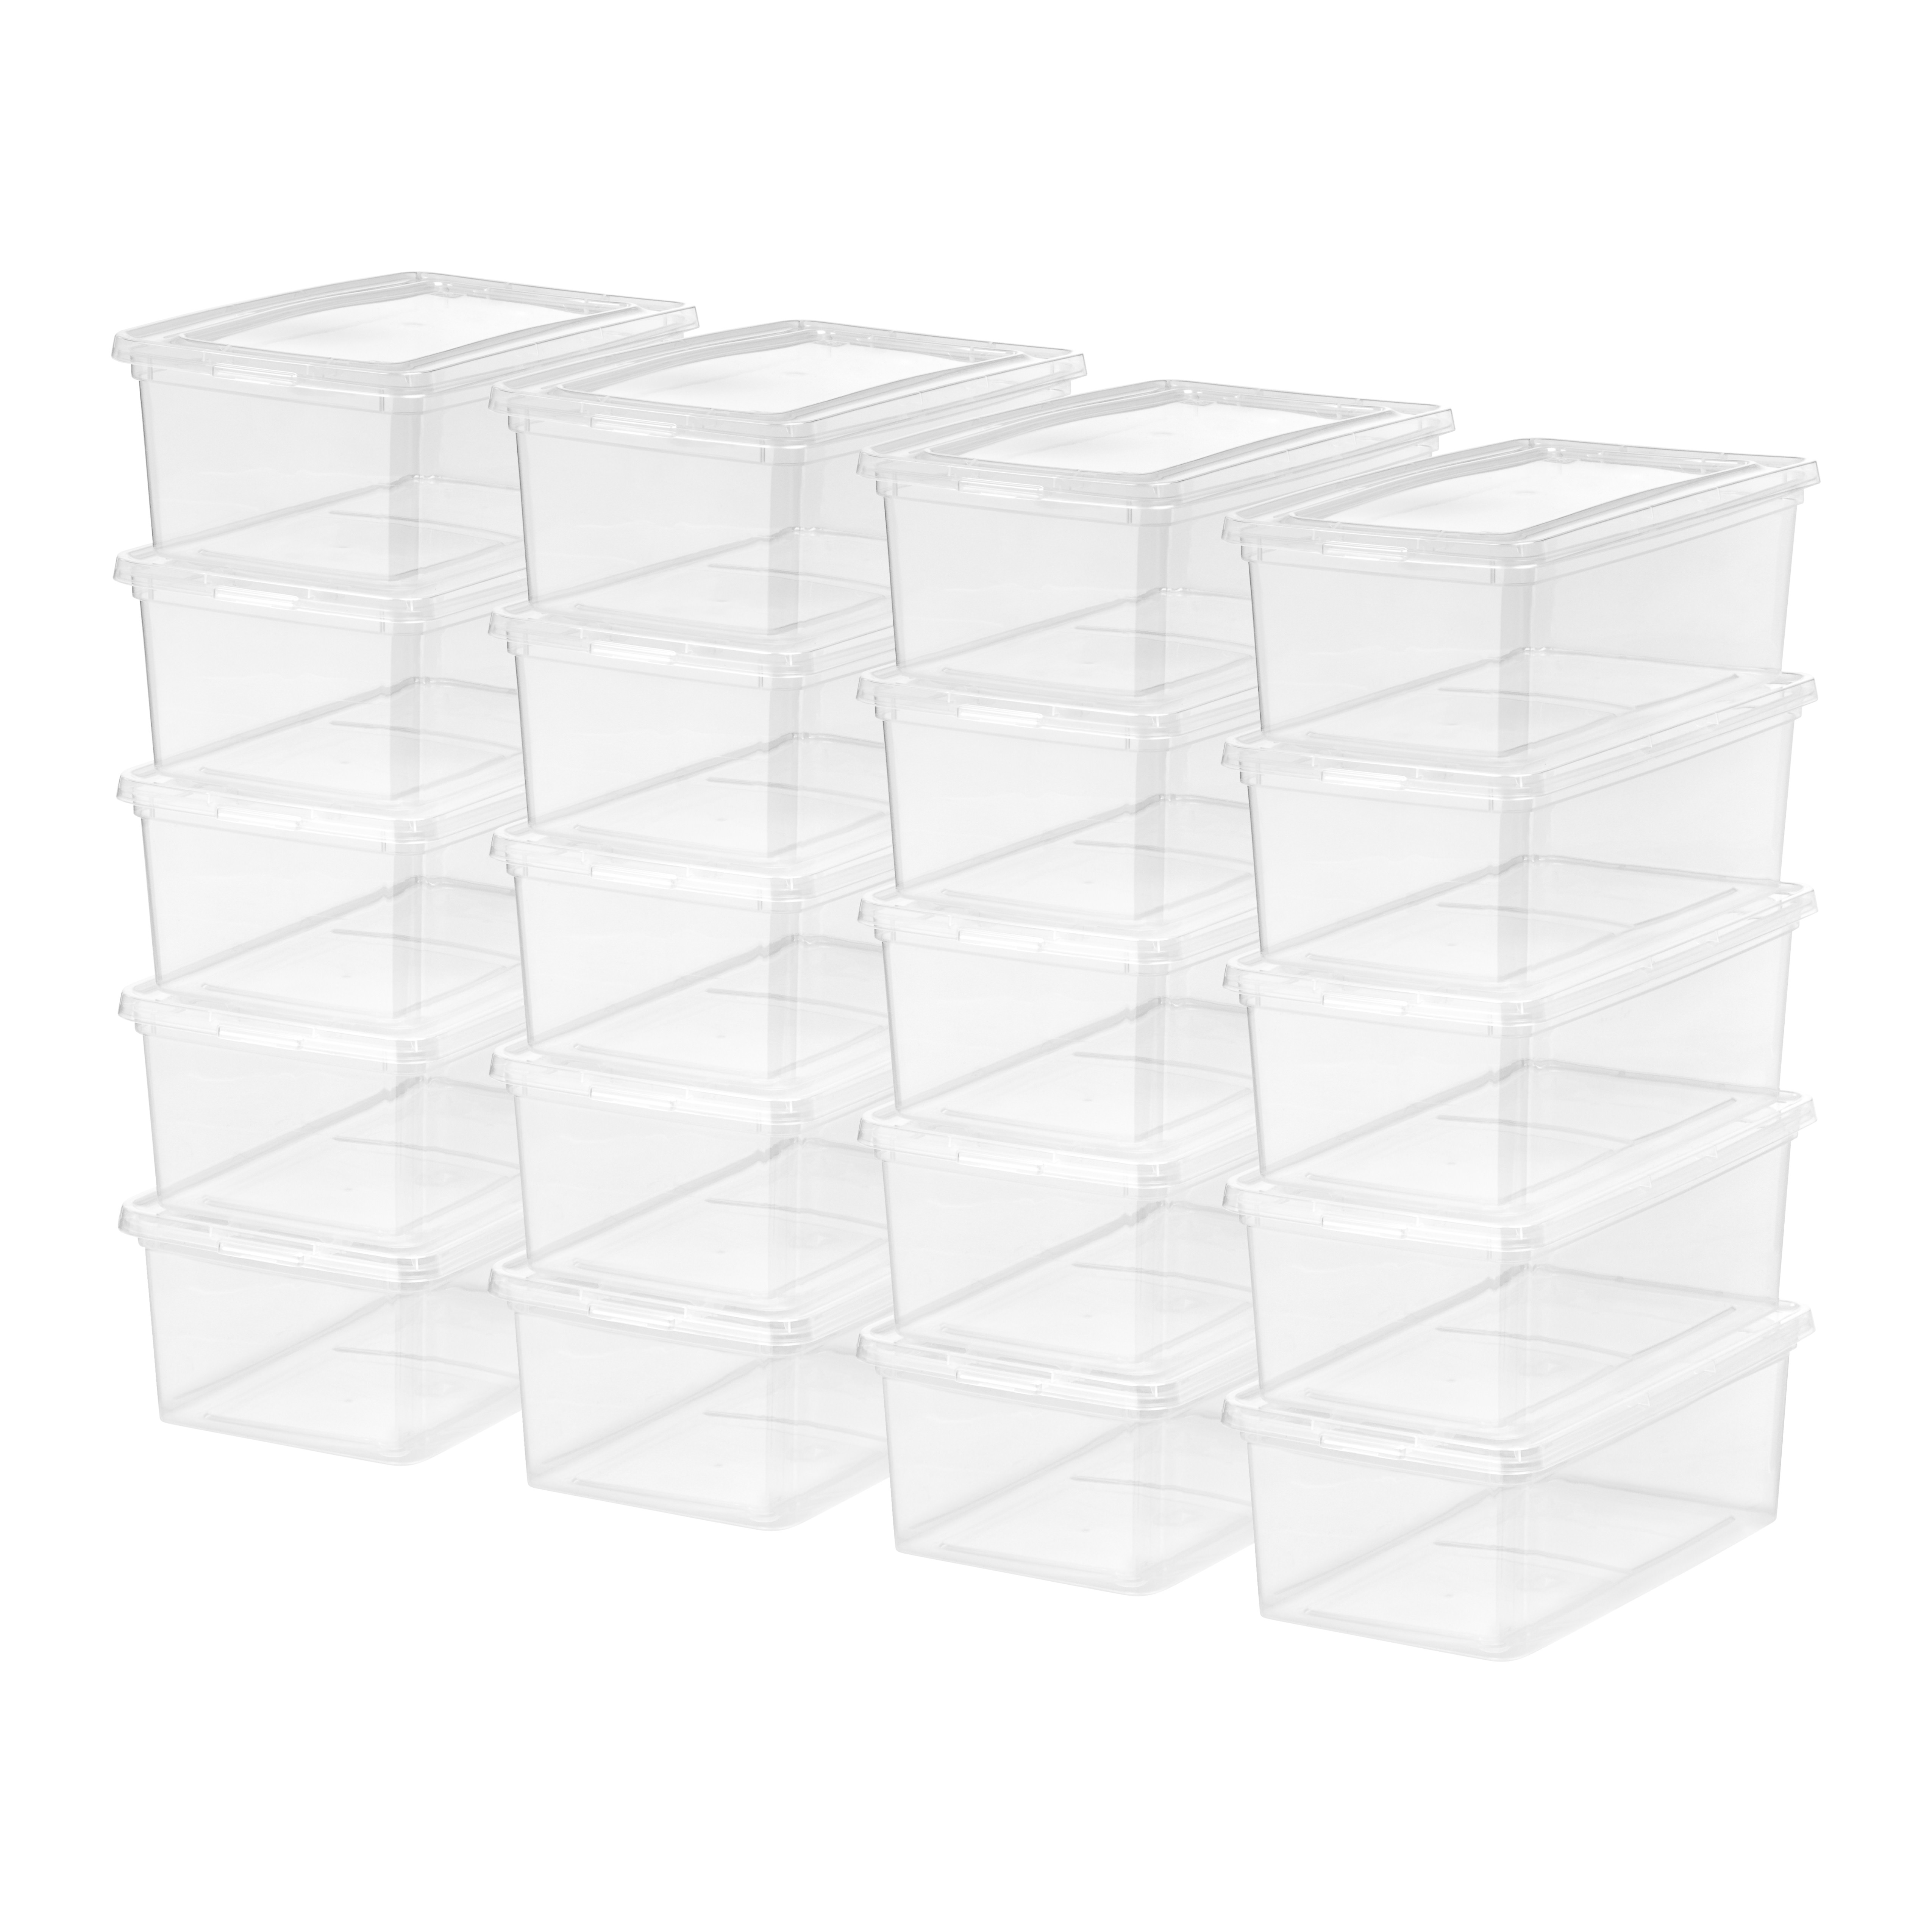 20 Pack Mainstays 5 Quart/1.25 Gallon Shoe Box Storage